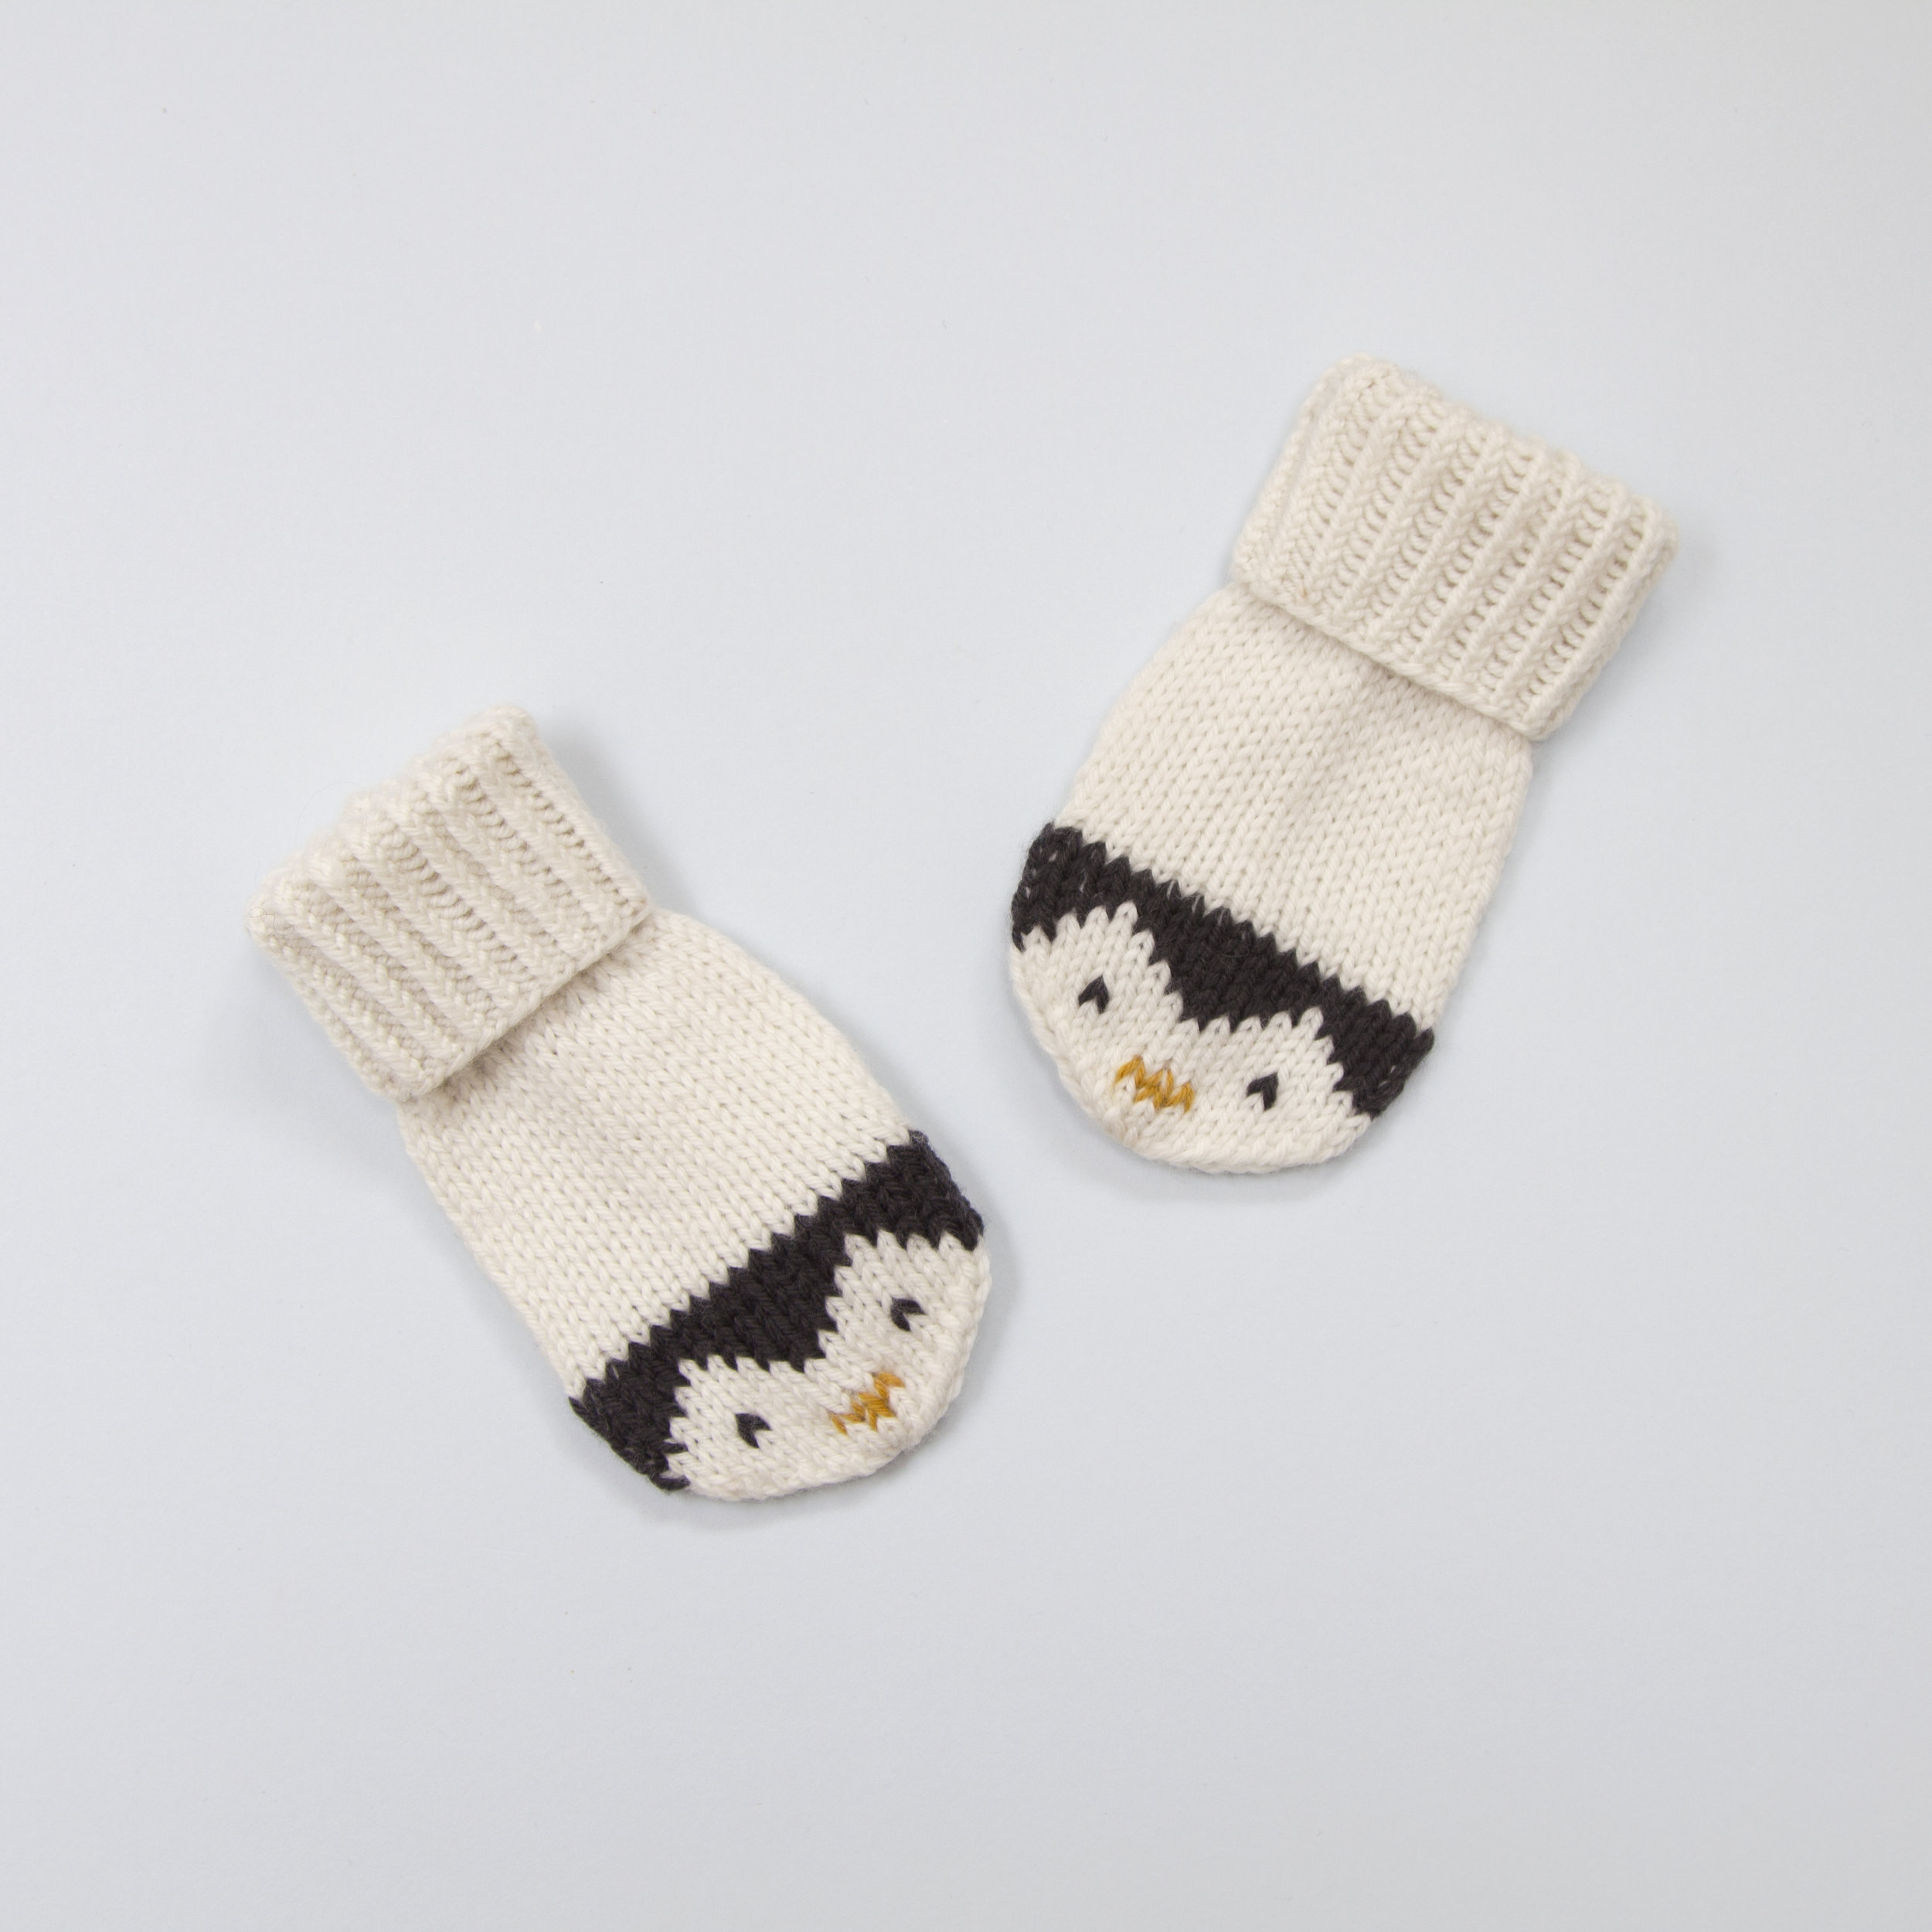 Careena Mittens -  £4.80